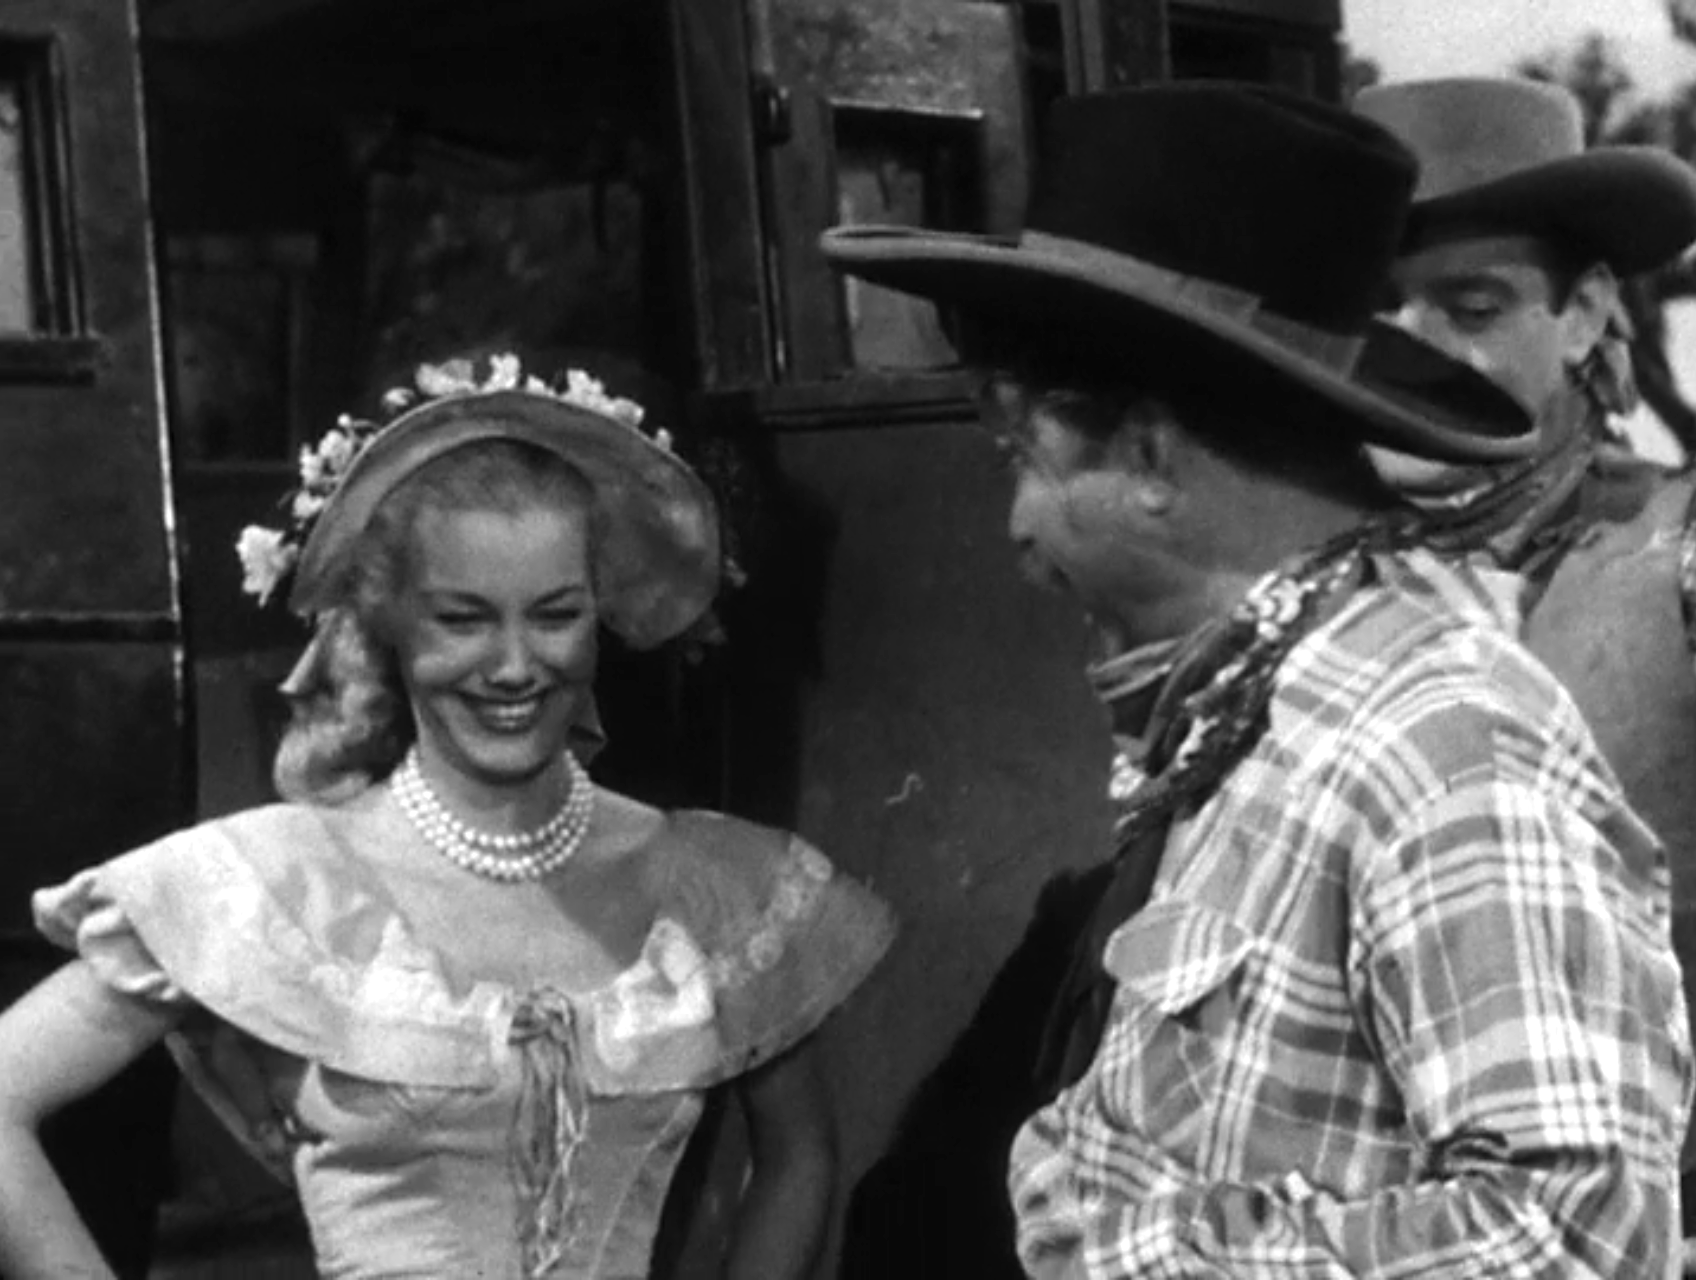 Lucille Knoch and Deadeye in Stagecoach Robbery